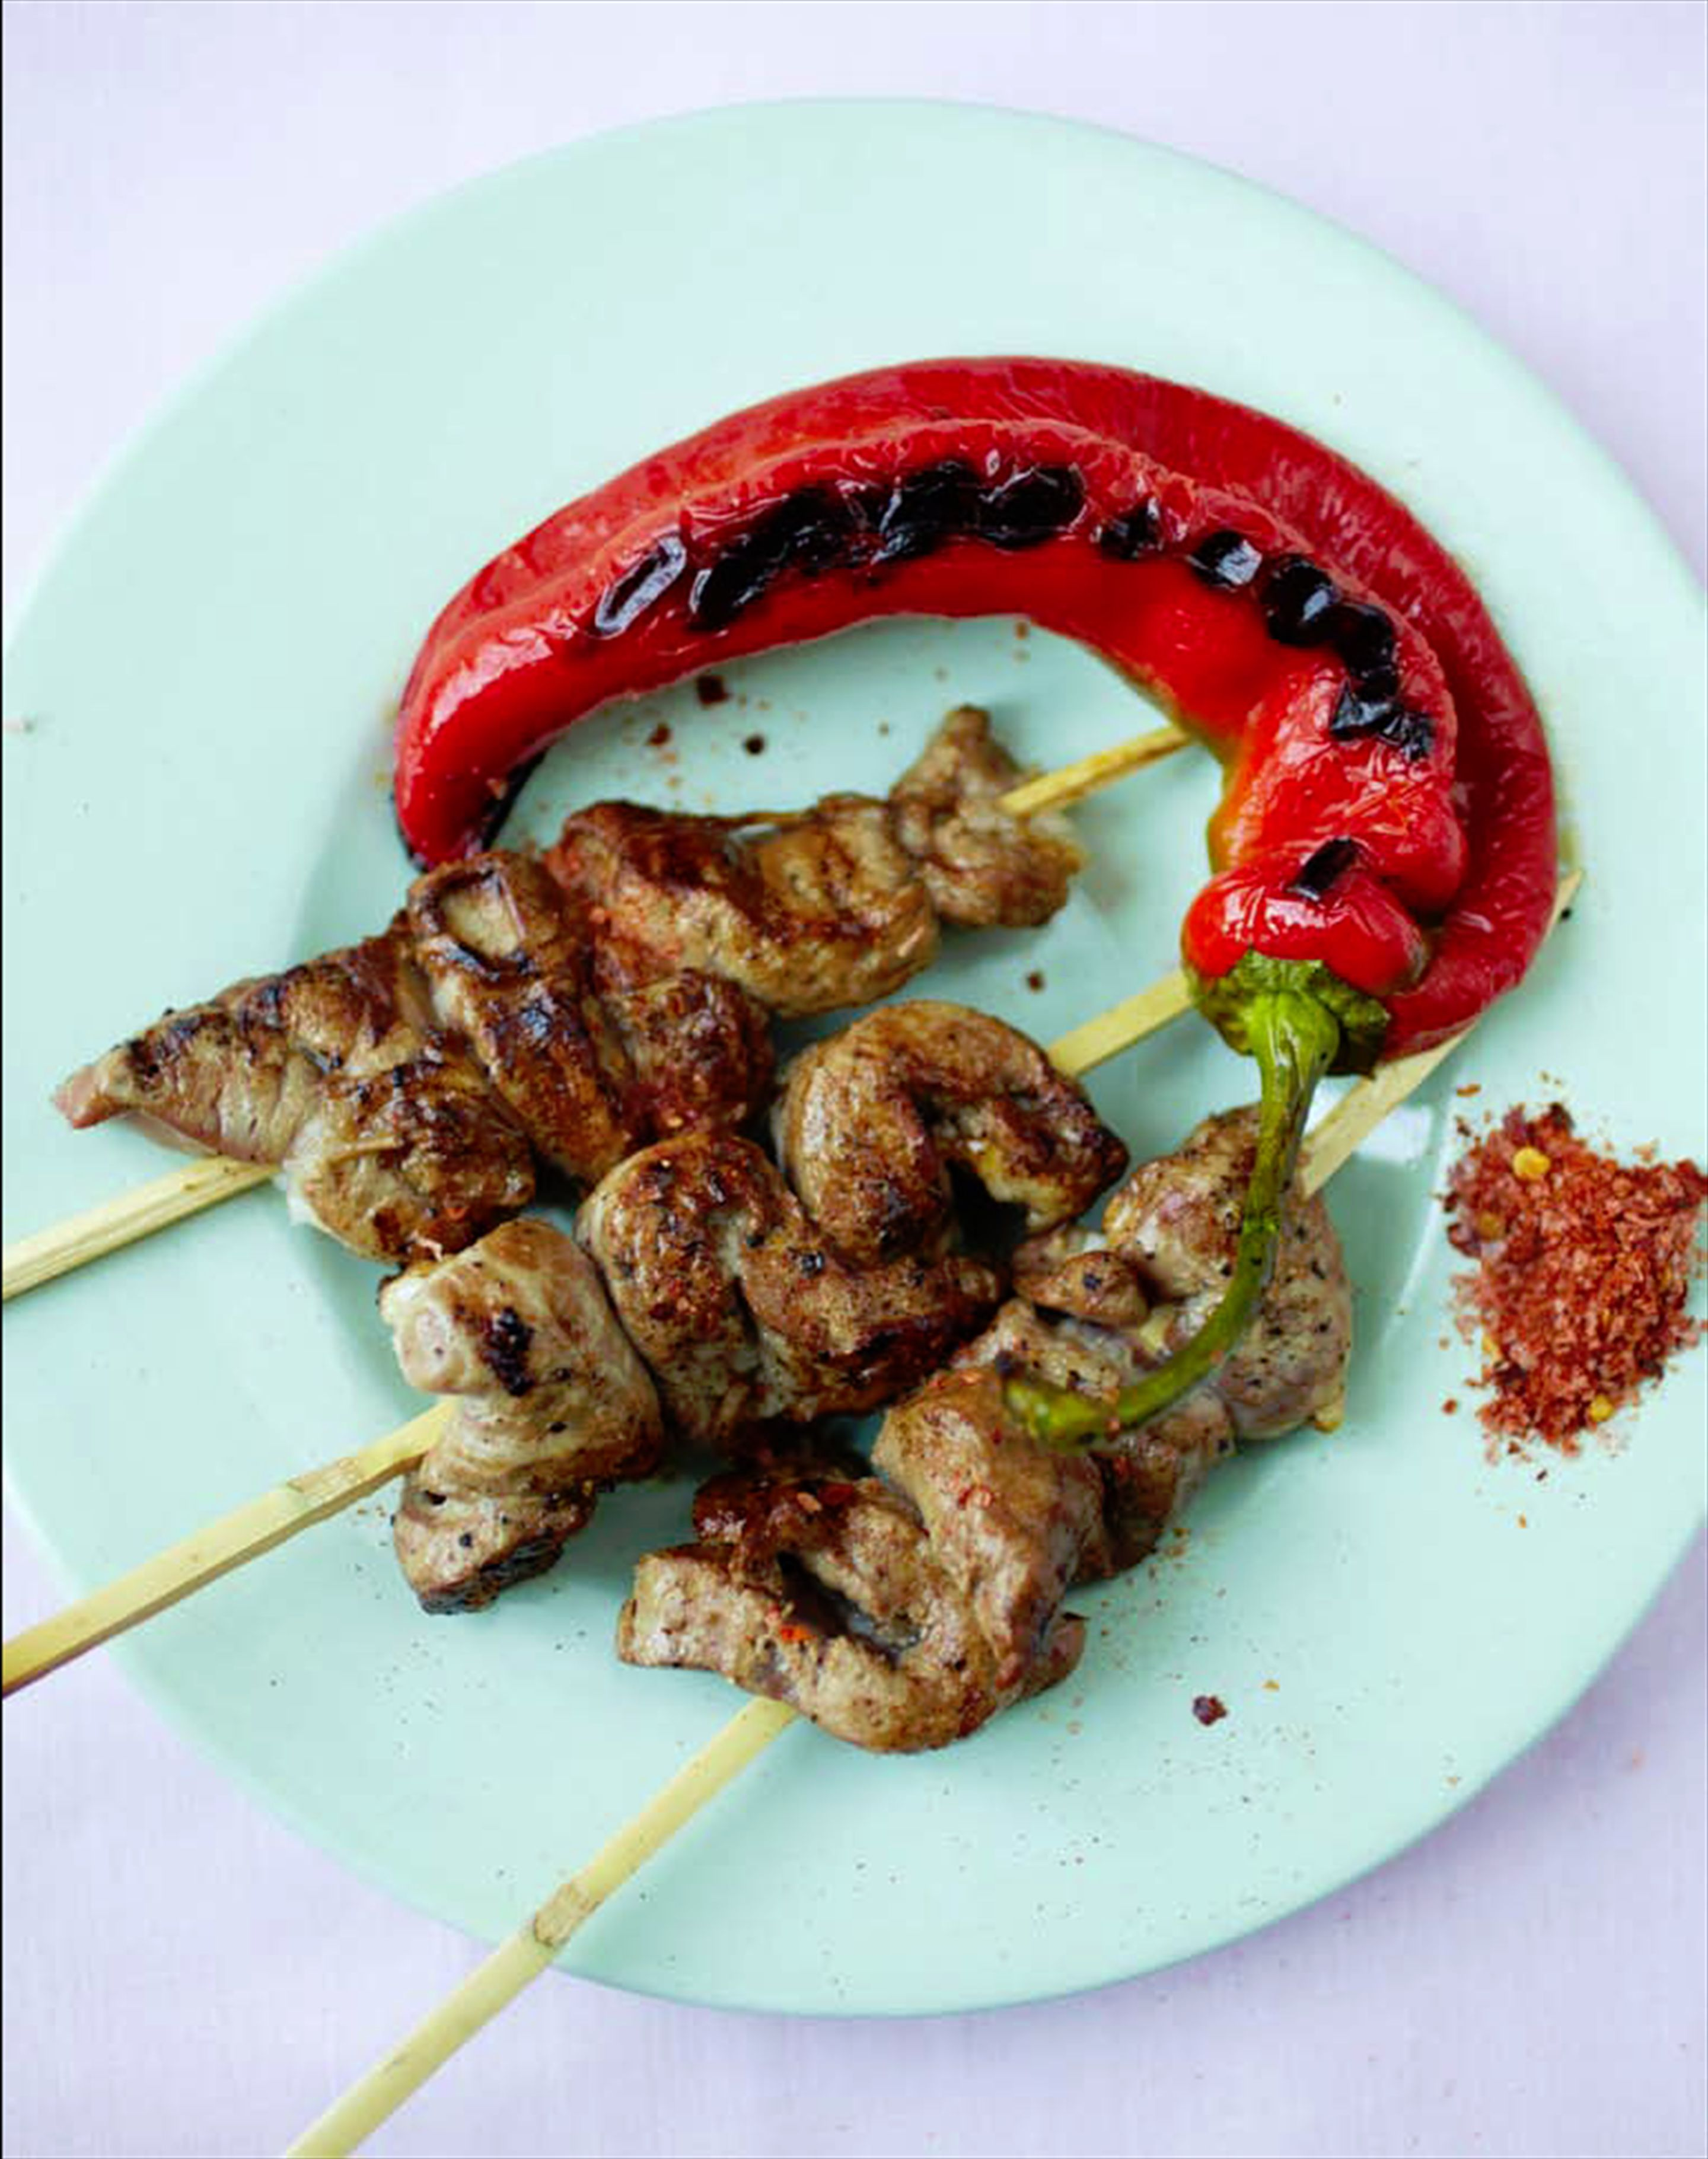 Liver brochettes with chilli salt